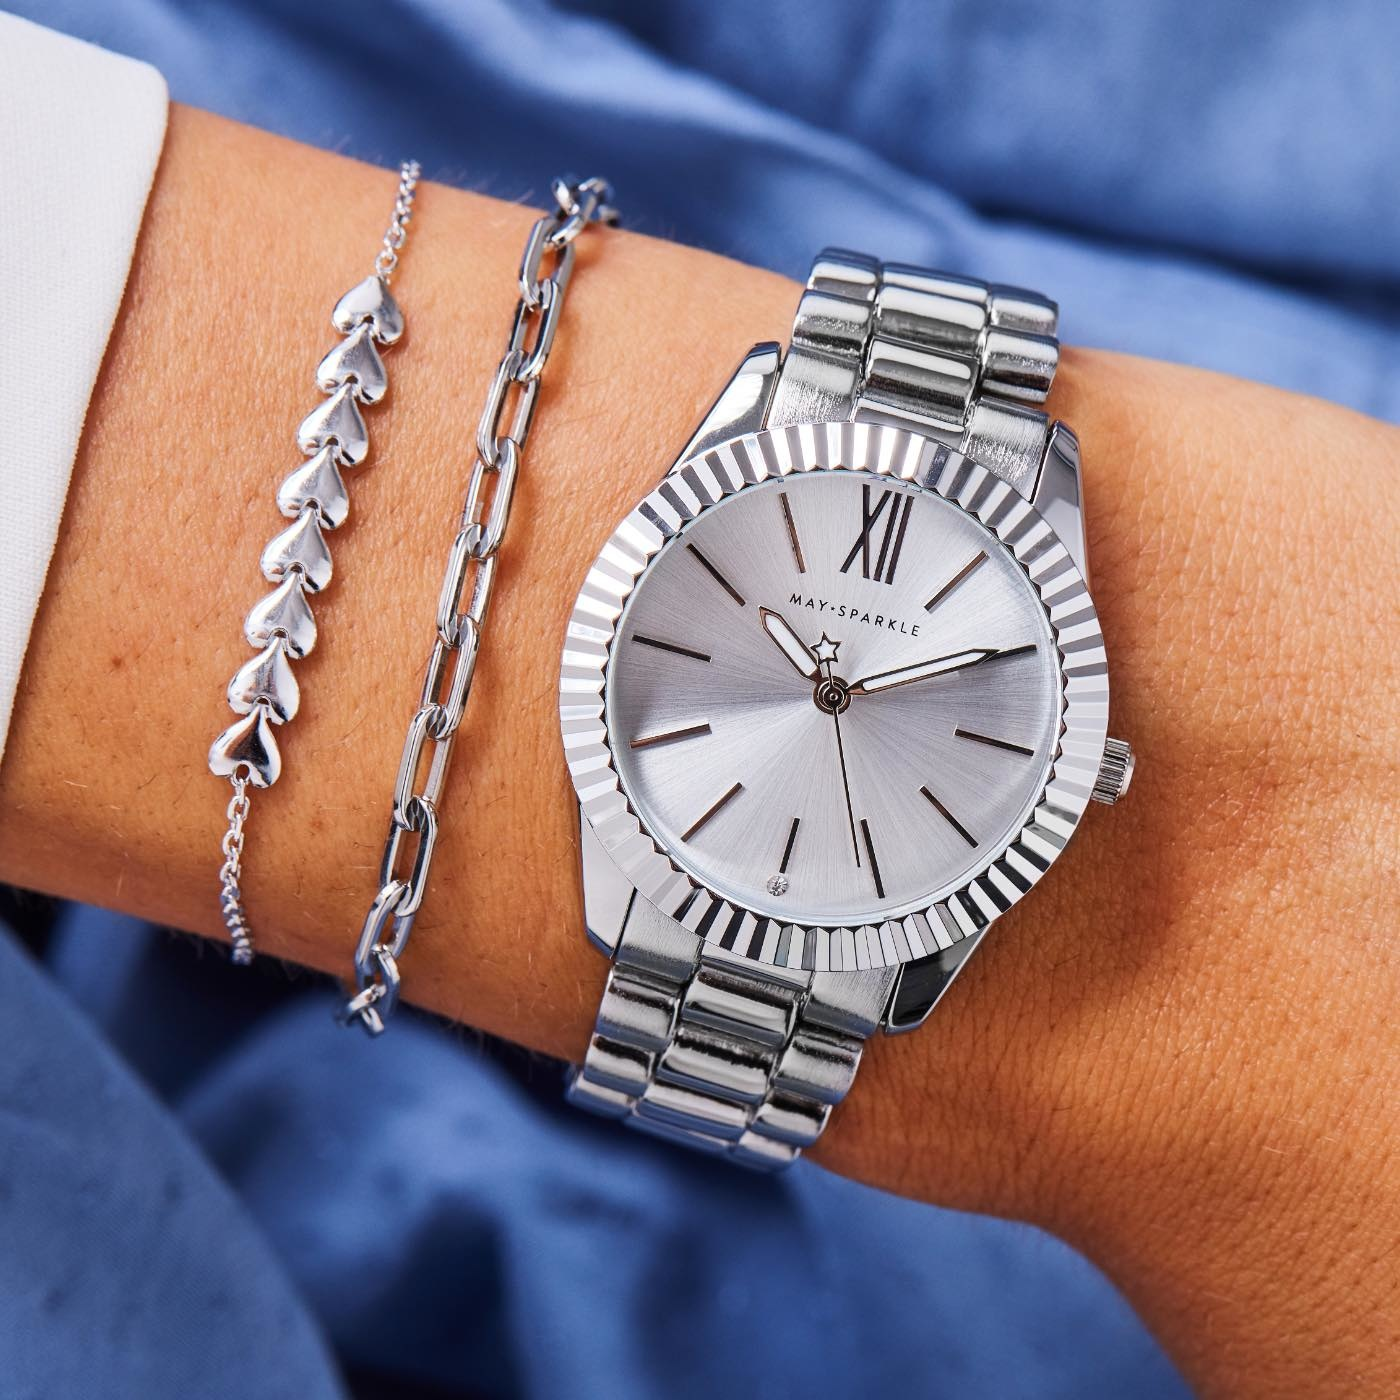 May Sparkle Luxurious Life Dahlia ladies watch silver colored